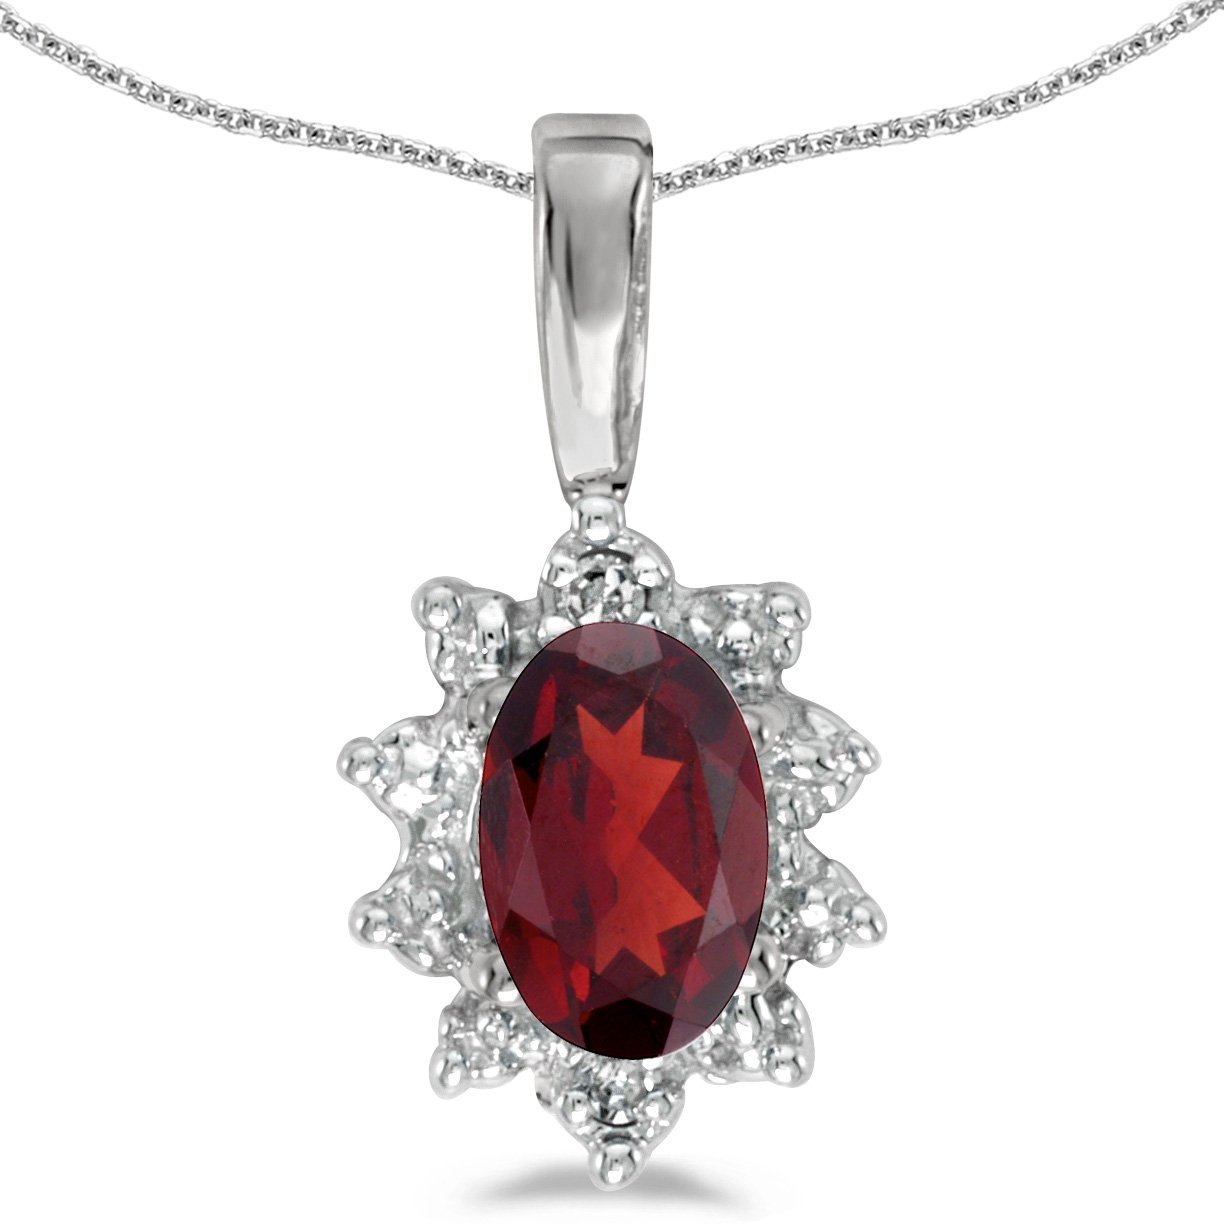 FB Jewels Solid 14k White Gold Genuine Birthstone Oval Gemstone And Diamond Pendant 0.31 Cttw.